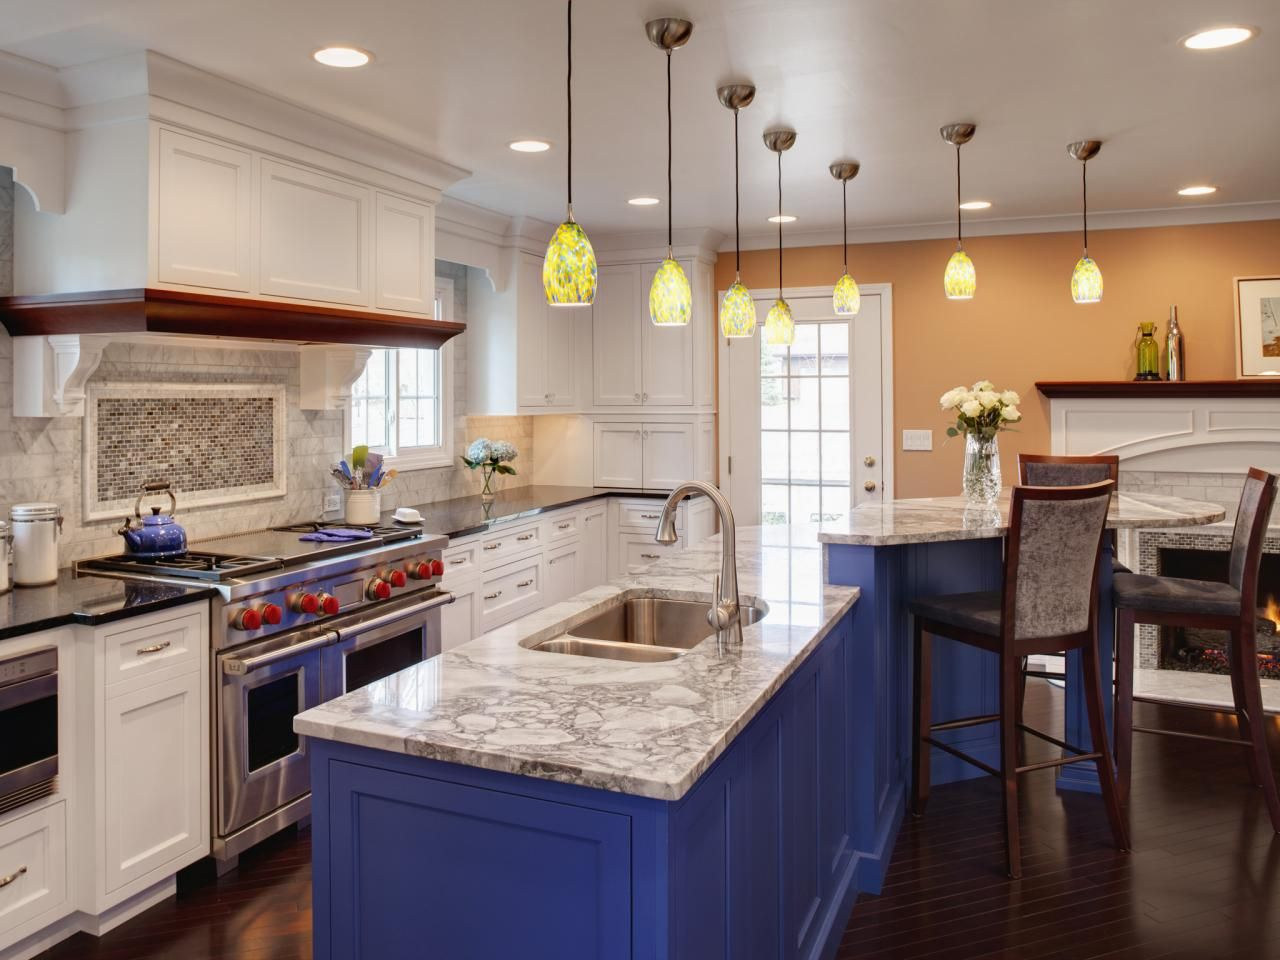 Painting kitchen cabinets ideas pictures hgtv kitchen ideas small